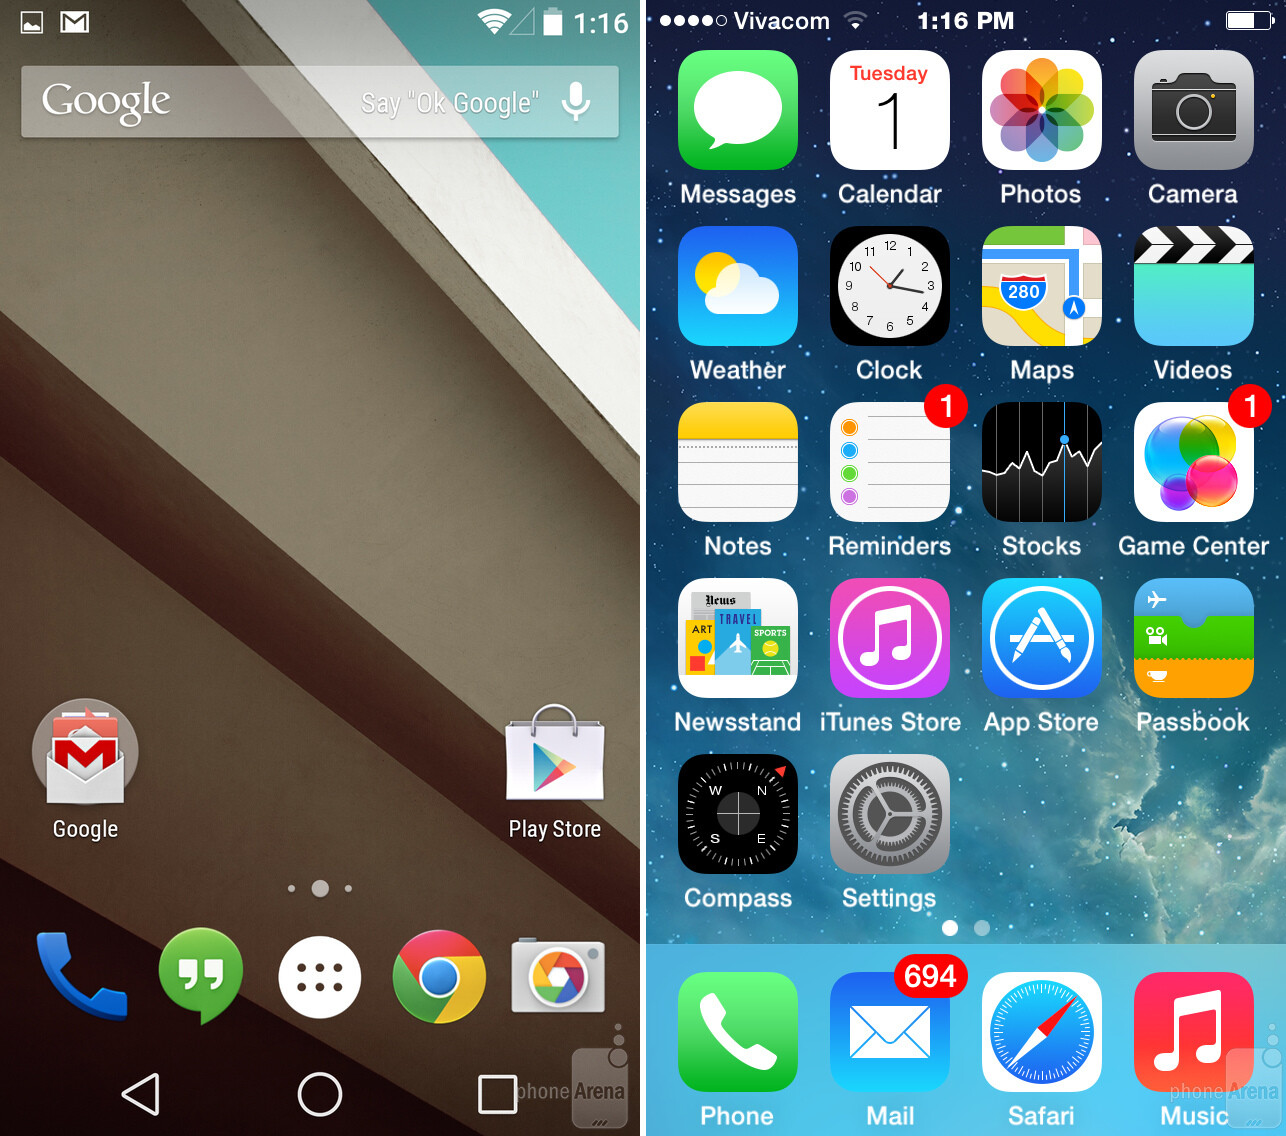 http://i-cdn.phonearena.com/images/articles/127223-image/The-Android-L-and-iOS-8-home-screens.jpg